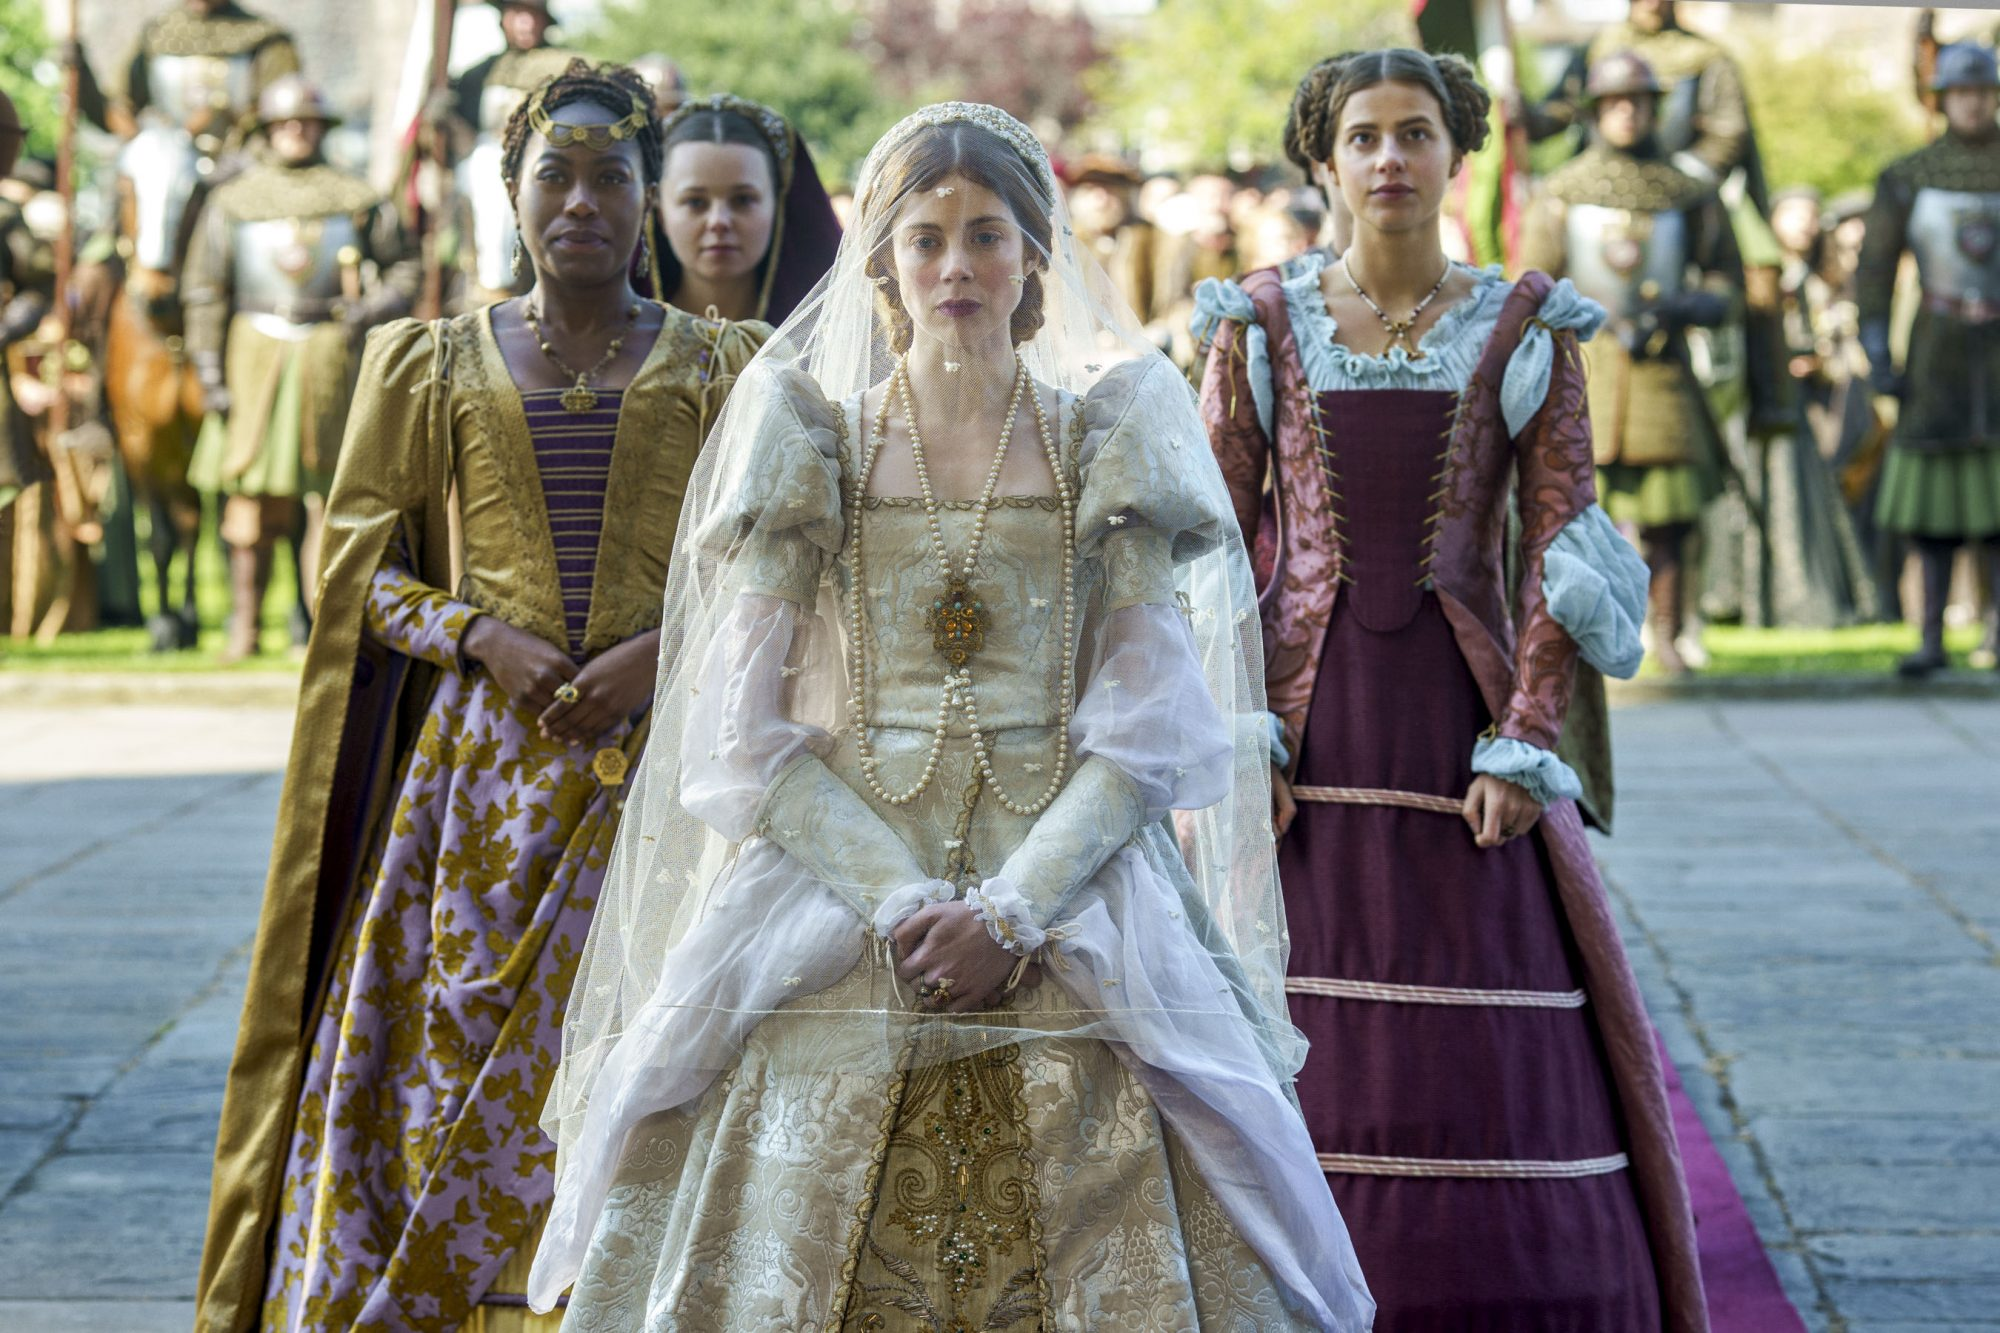 The Spanish Princess Stephanie Levi-John (Lina), Charlotte Hope (Princess Catherine), Nadia Parkes (Rosa) CR: Nick Briggs/Starz